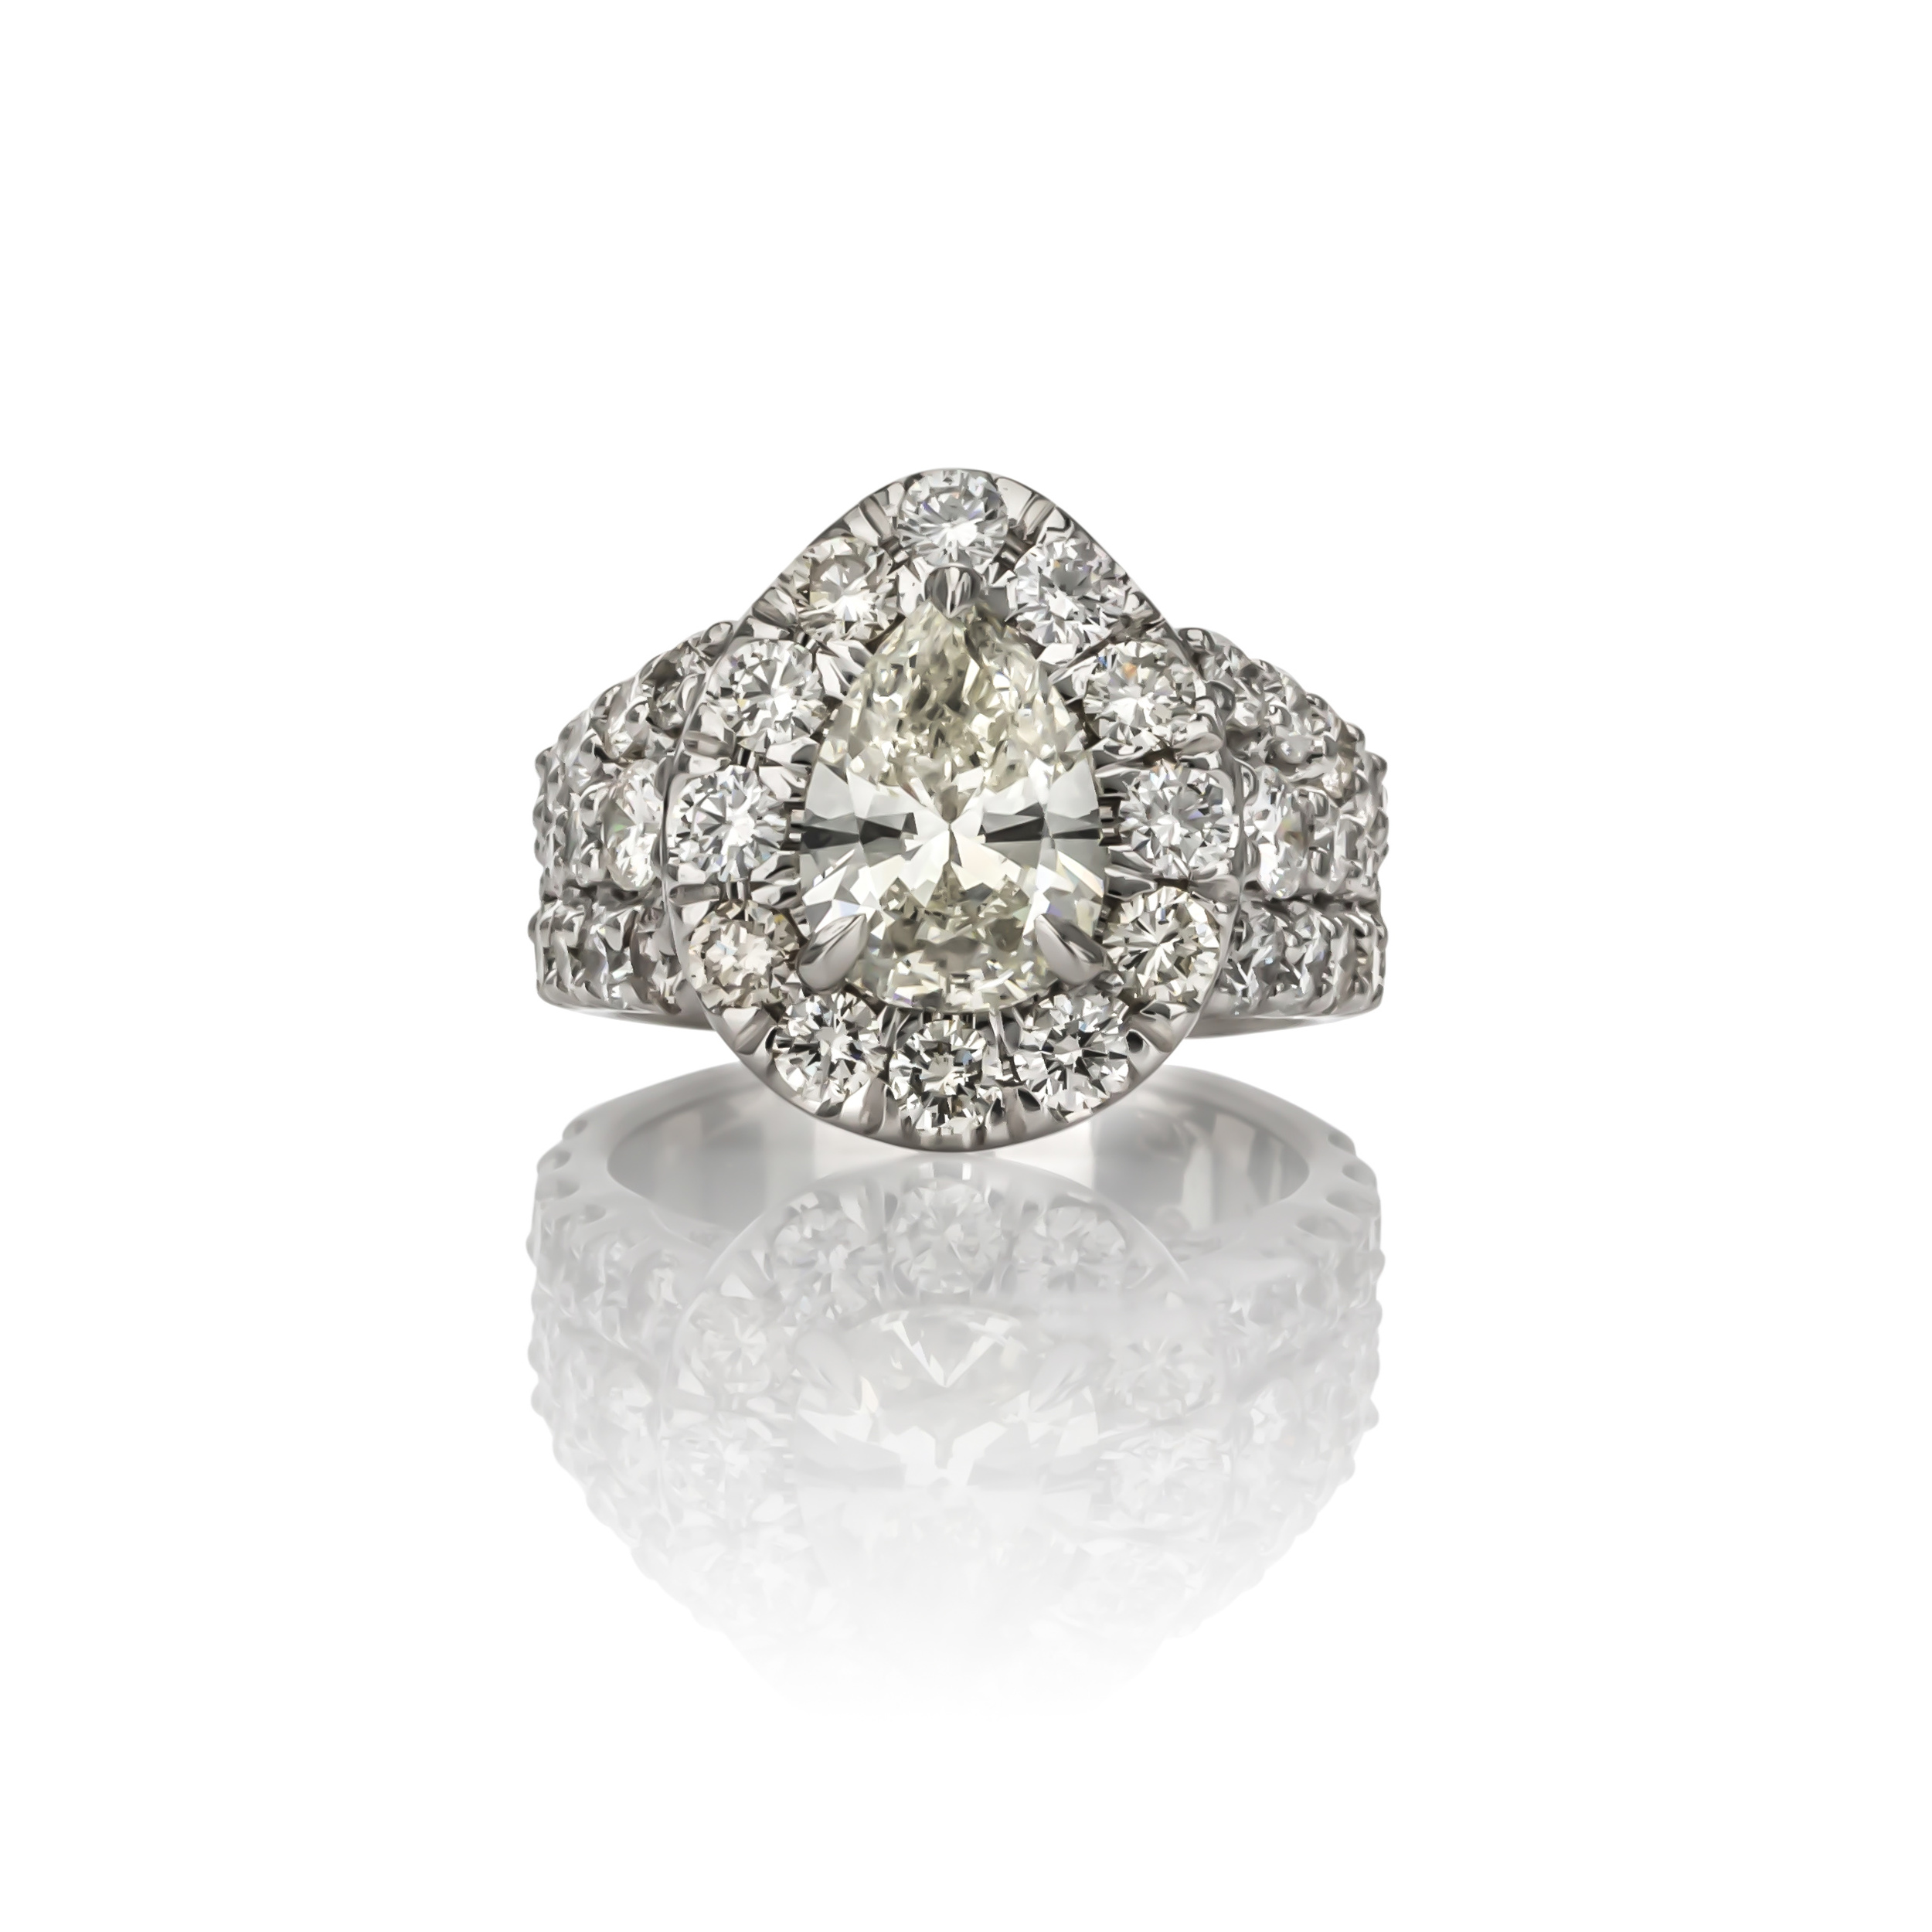 CUSTOM DIAMOND RING designed using our client's original pear shaped diamond.